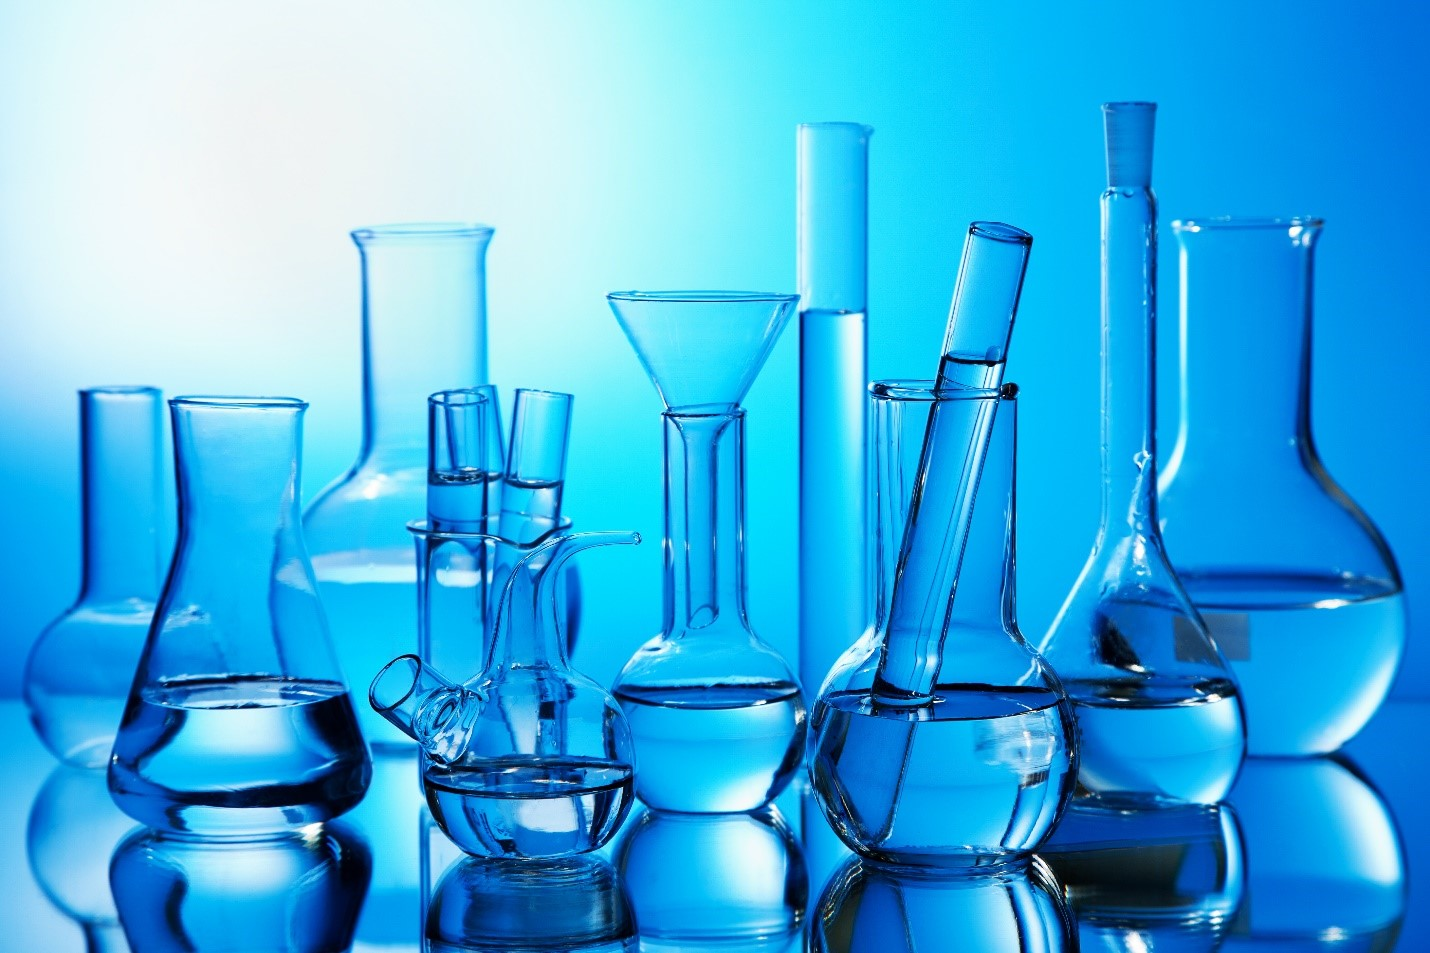 clear beakers with clear liquid in them against a blue background. very clinical vibe